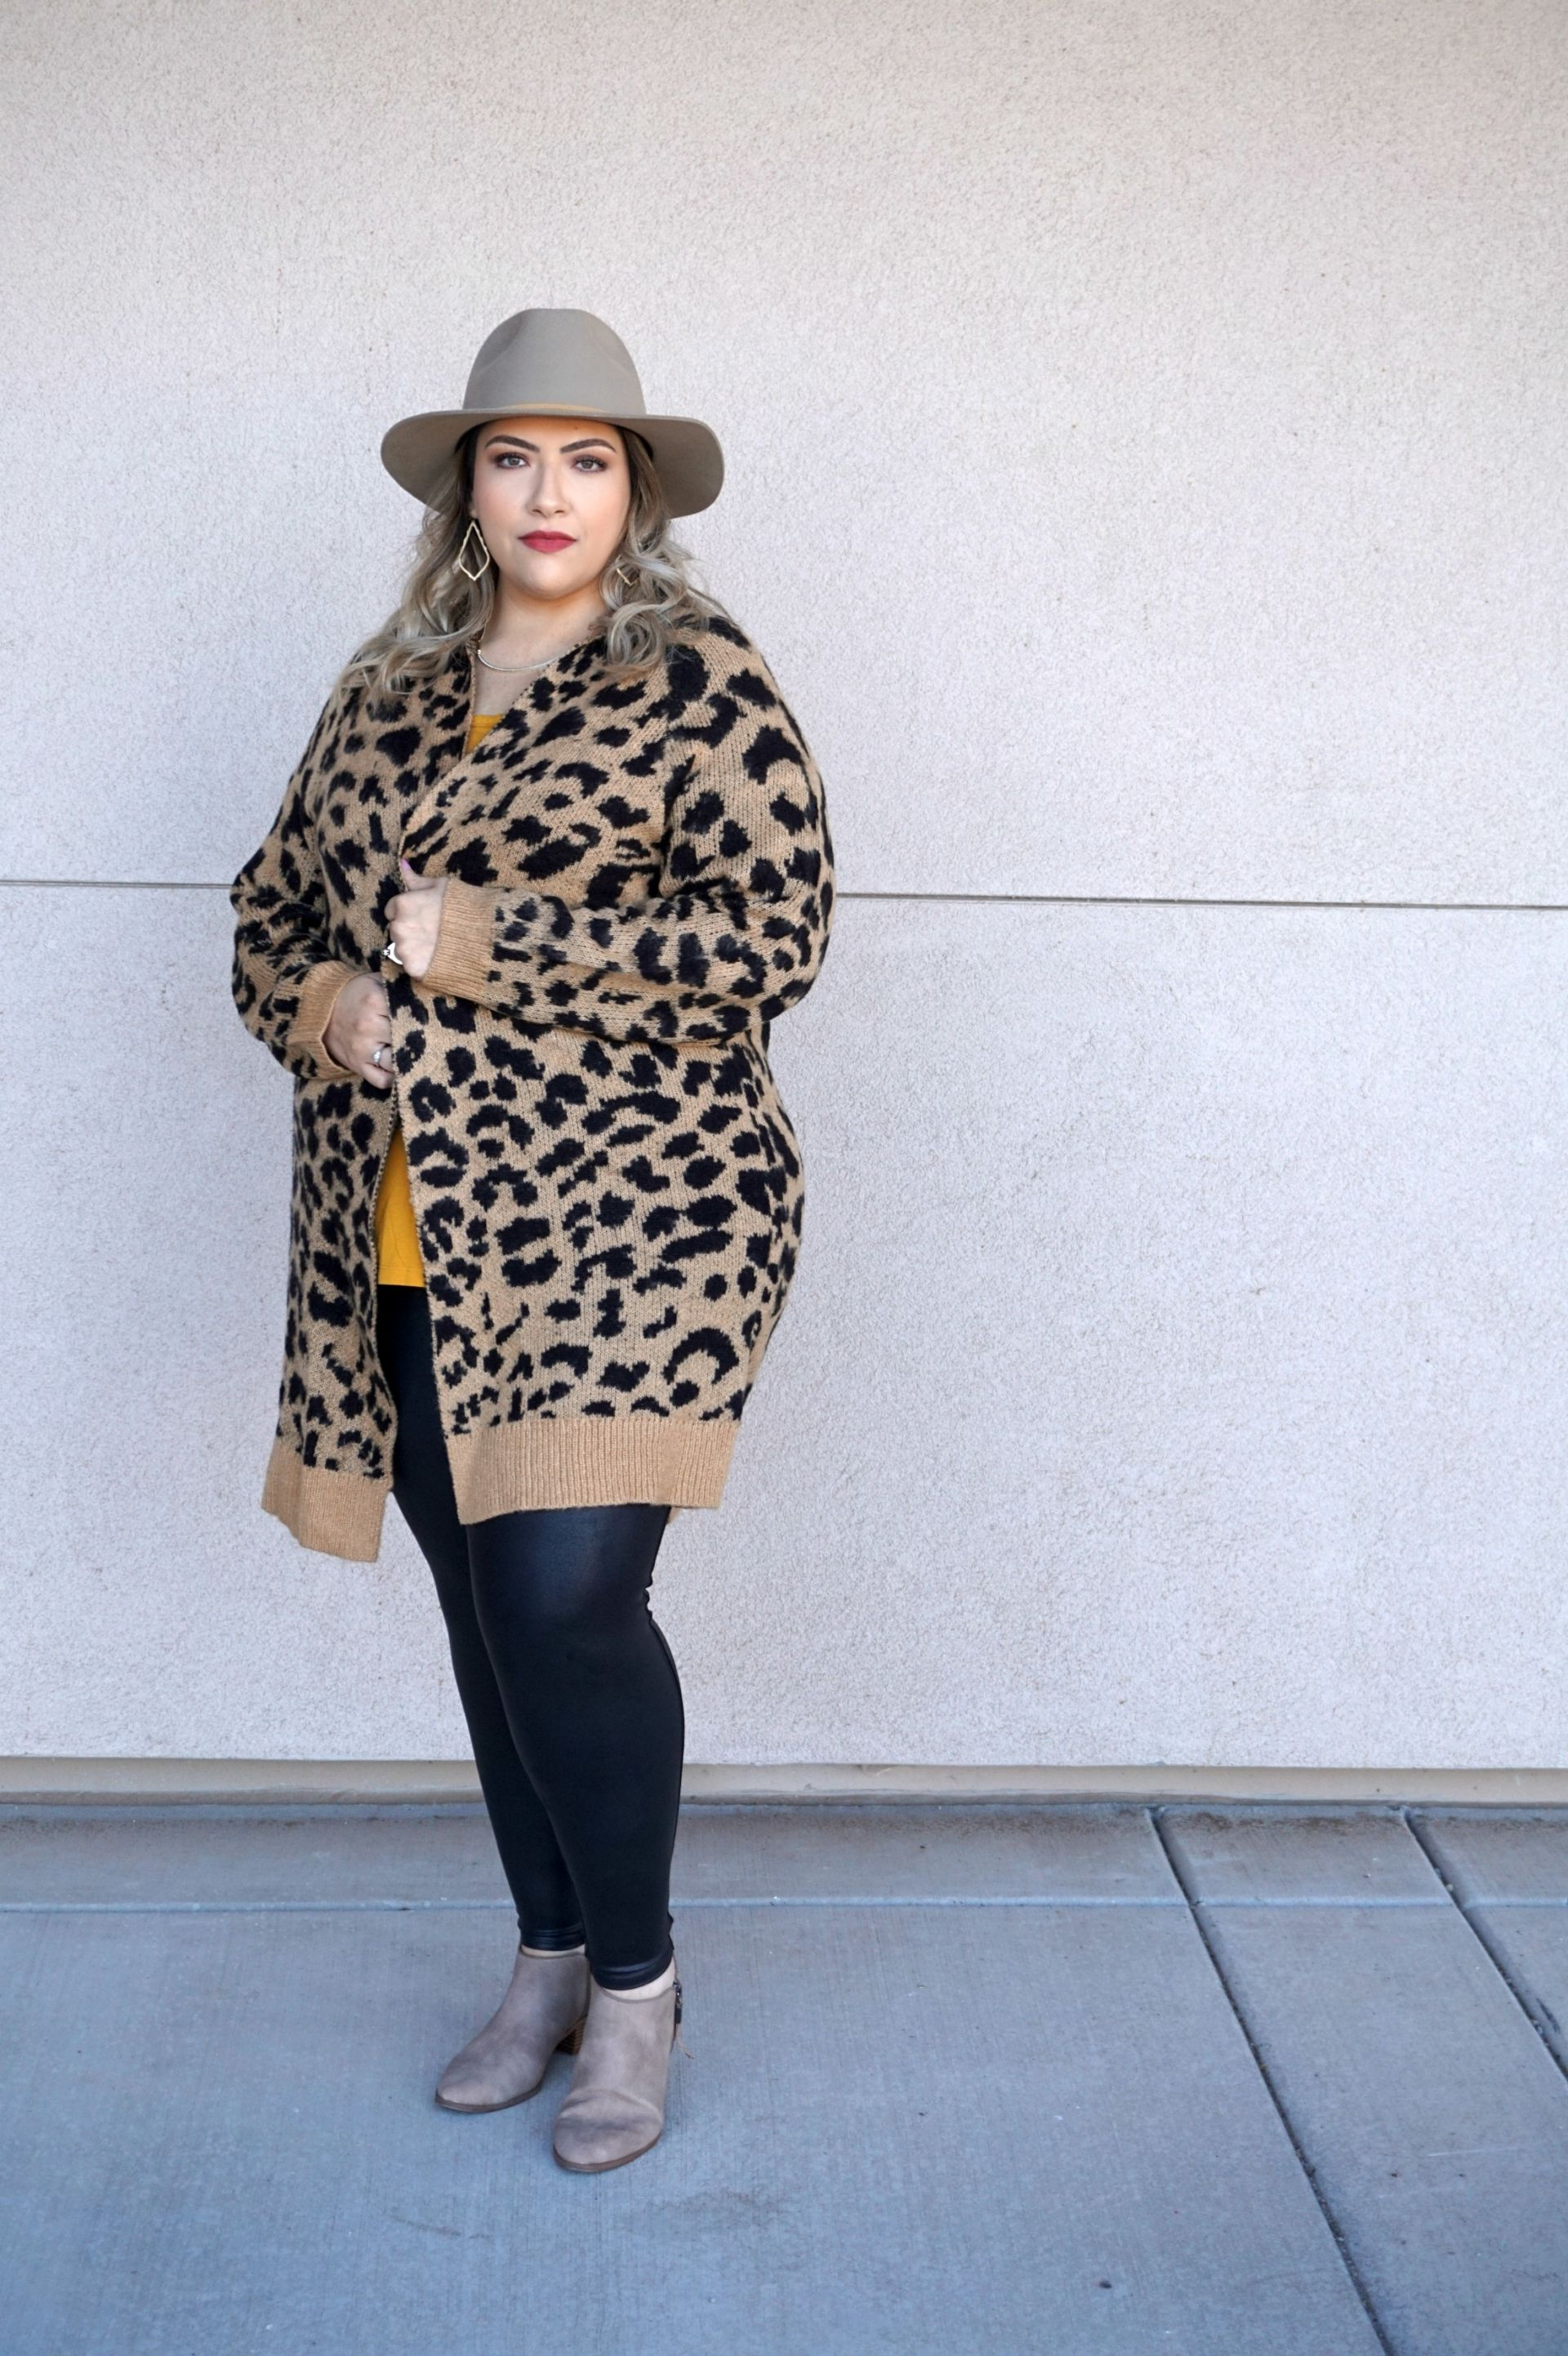 How To Style Faux Leather Leggings For All Sizes // Plus Size Fall Fashion // Fall Fashion Outfit Ideas // Spanx Leather Leggings // Casual Outfits // Legging Outfit Ideas | Beauty With Lily